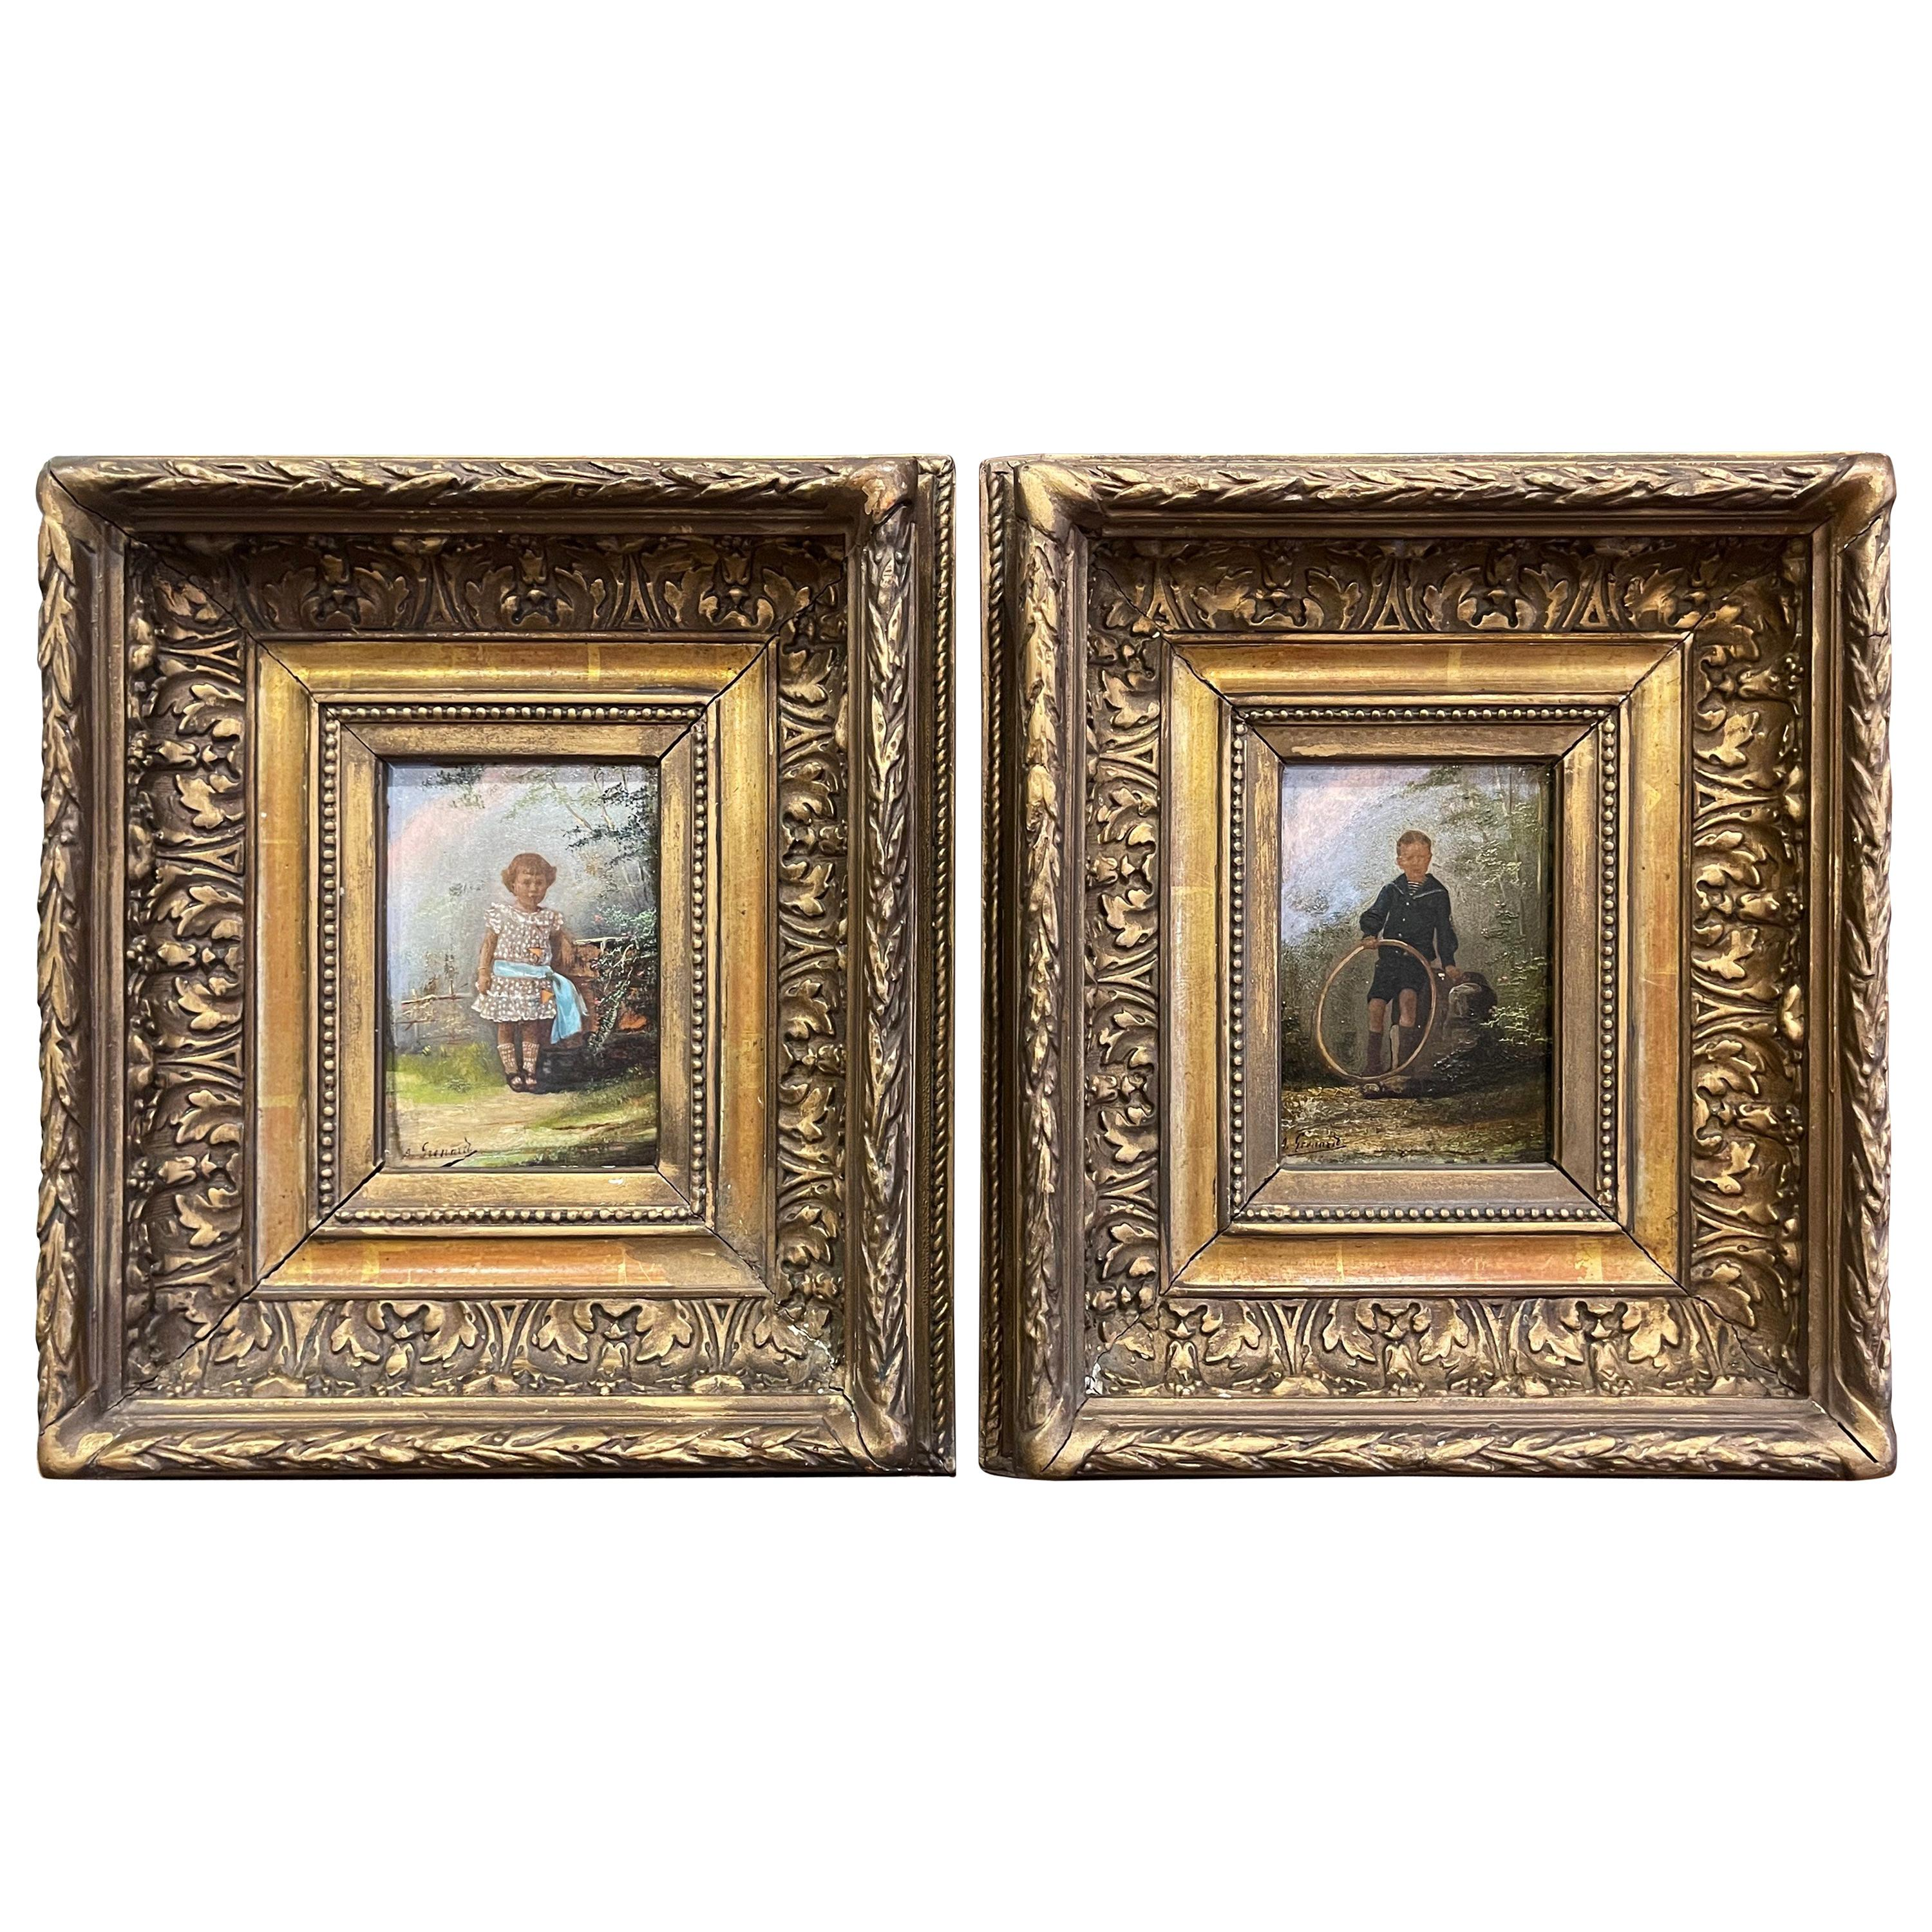 Pair of 19th Century French Signed Oil on Board Paintings in Carved Gilt Frames